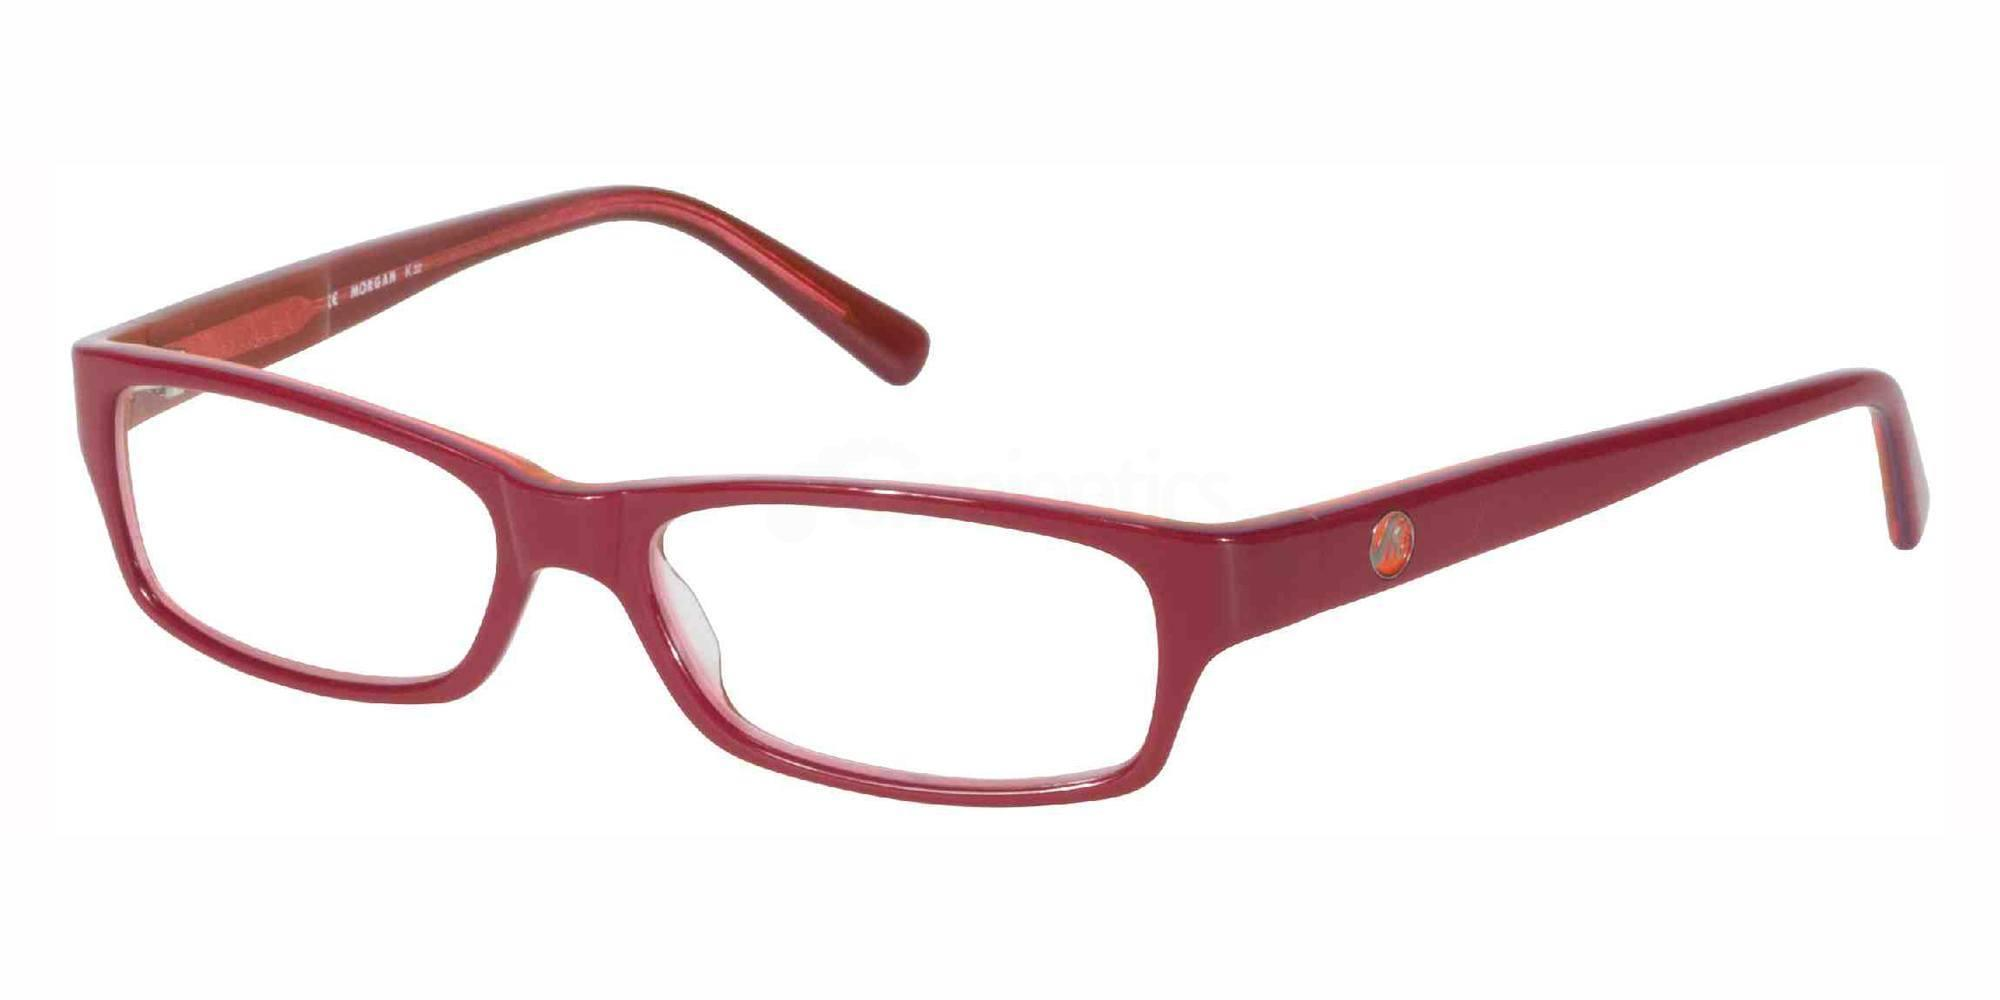 6329 201043 Glasses, MORGAN Eyewear